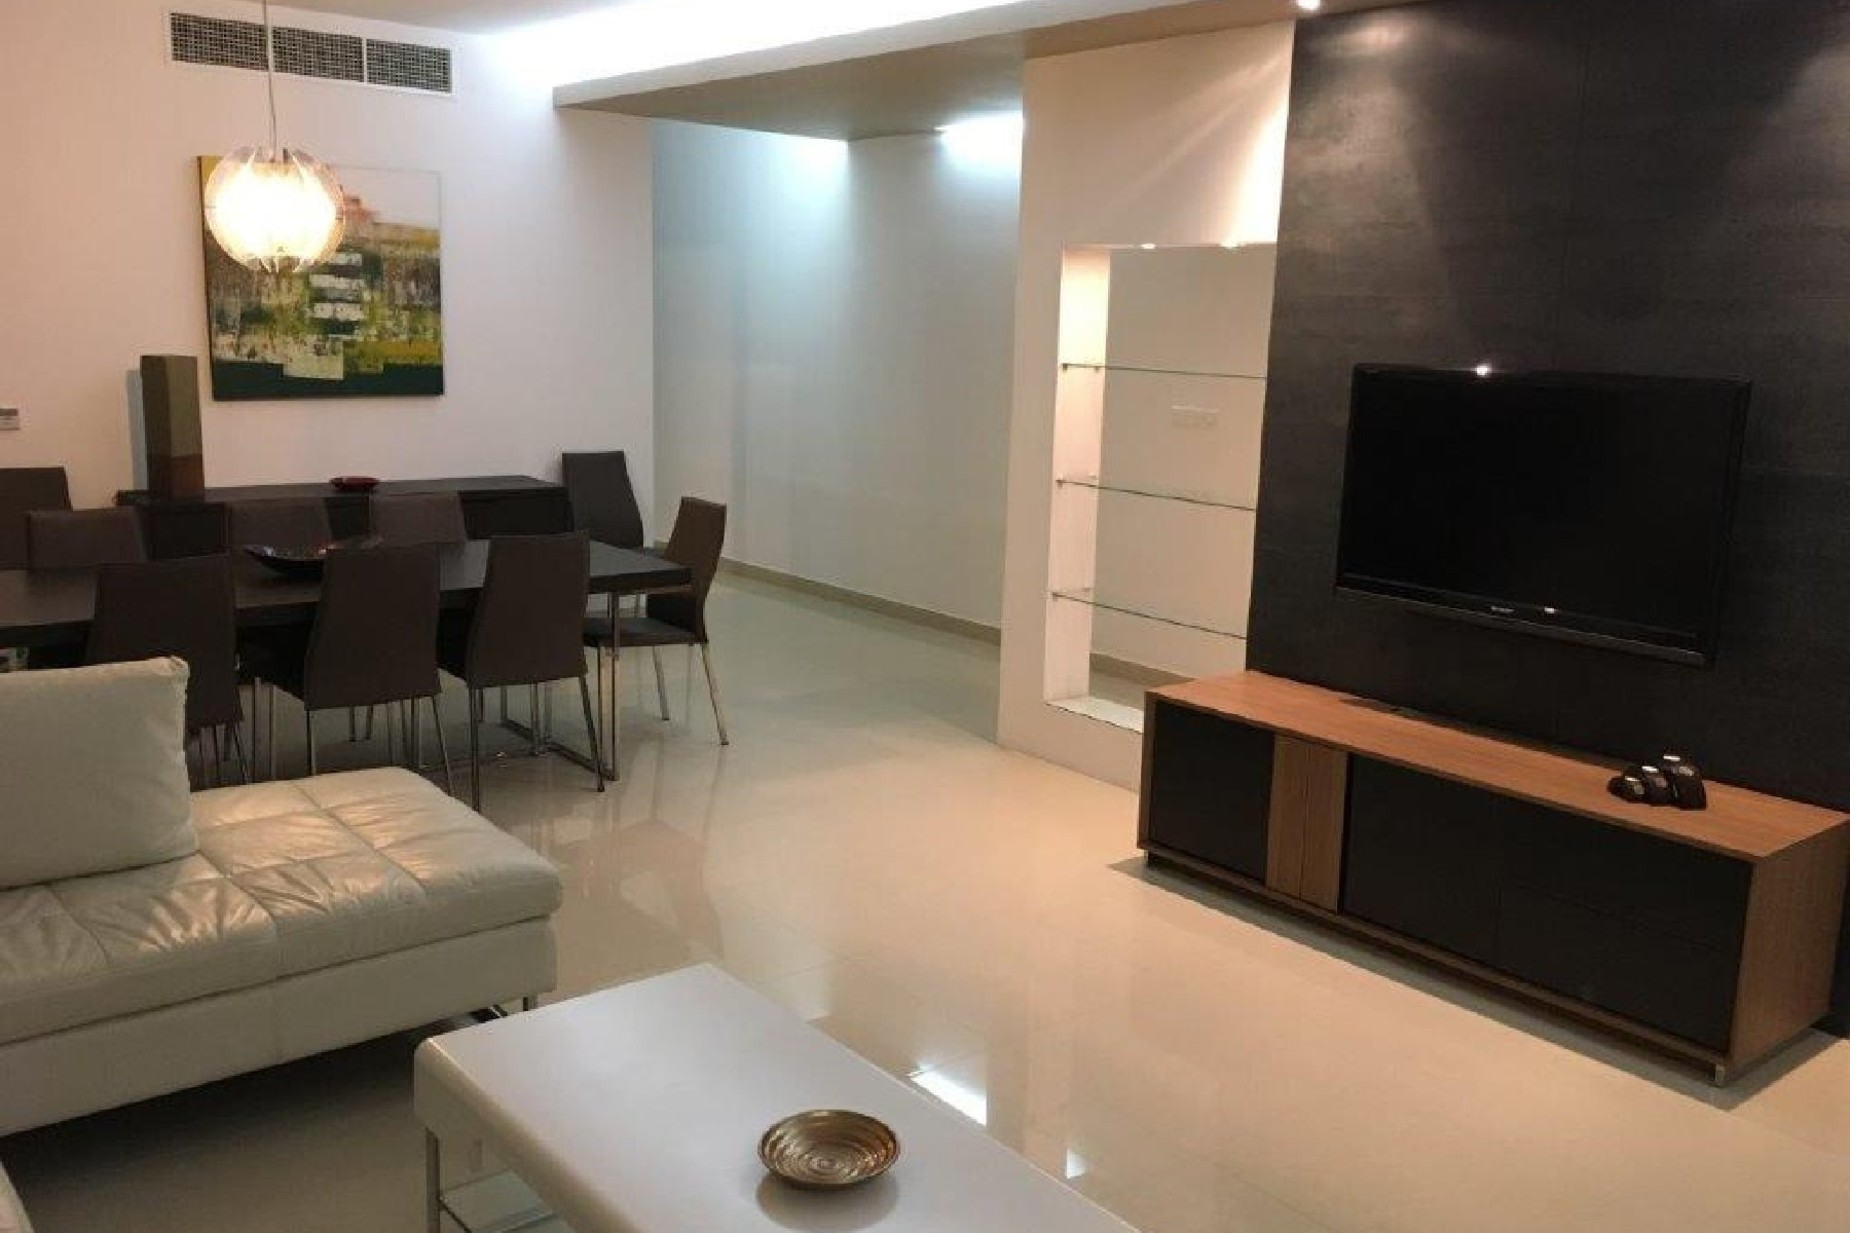 3 bed Apartment For Rent in Madliena, Madliena - thumb 2